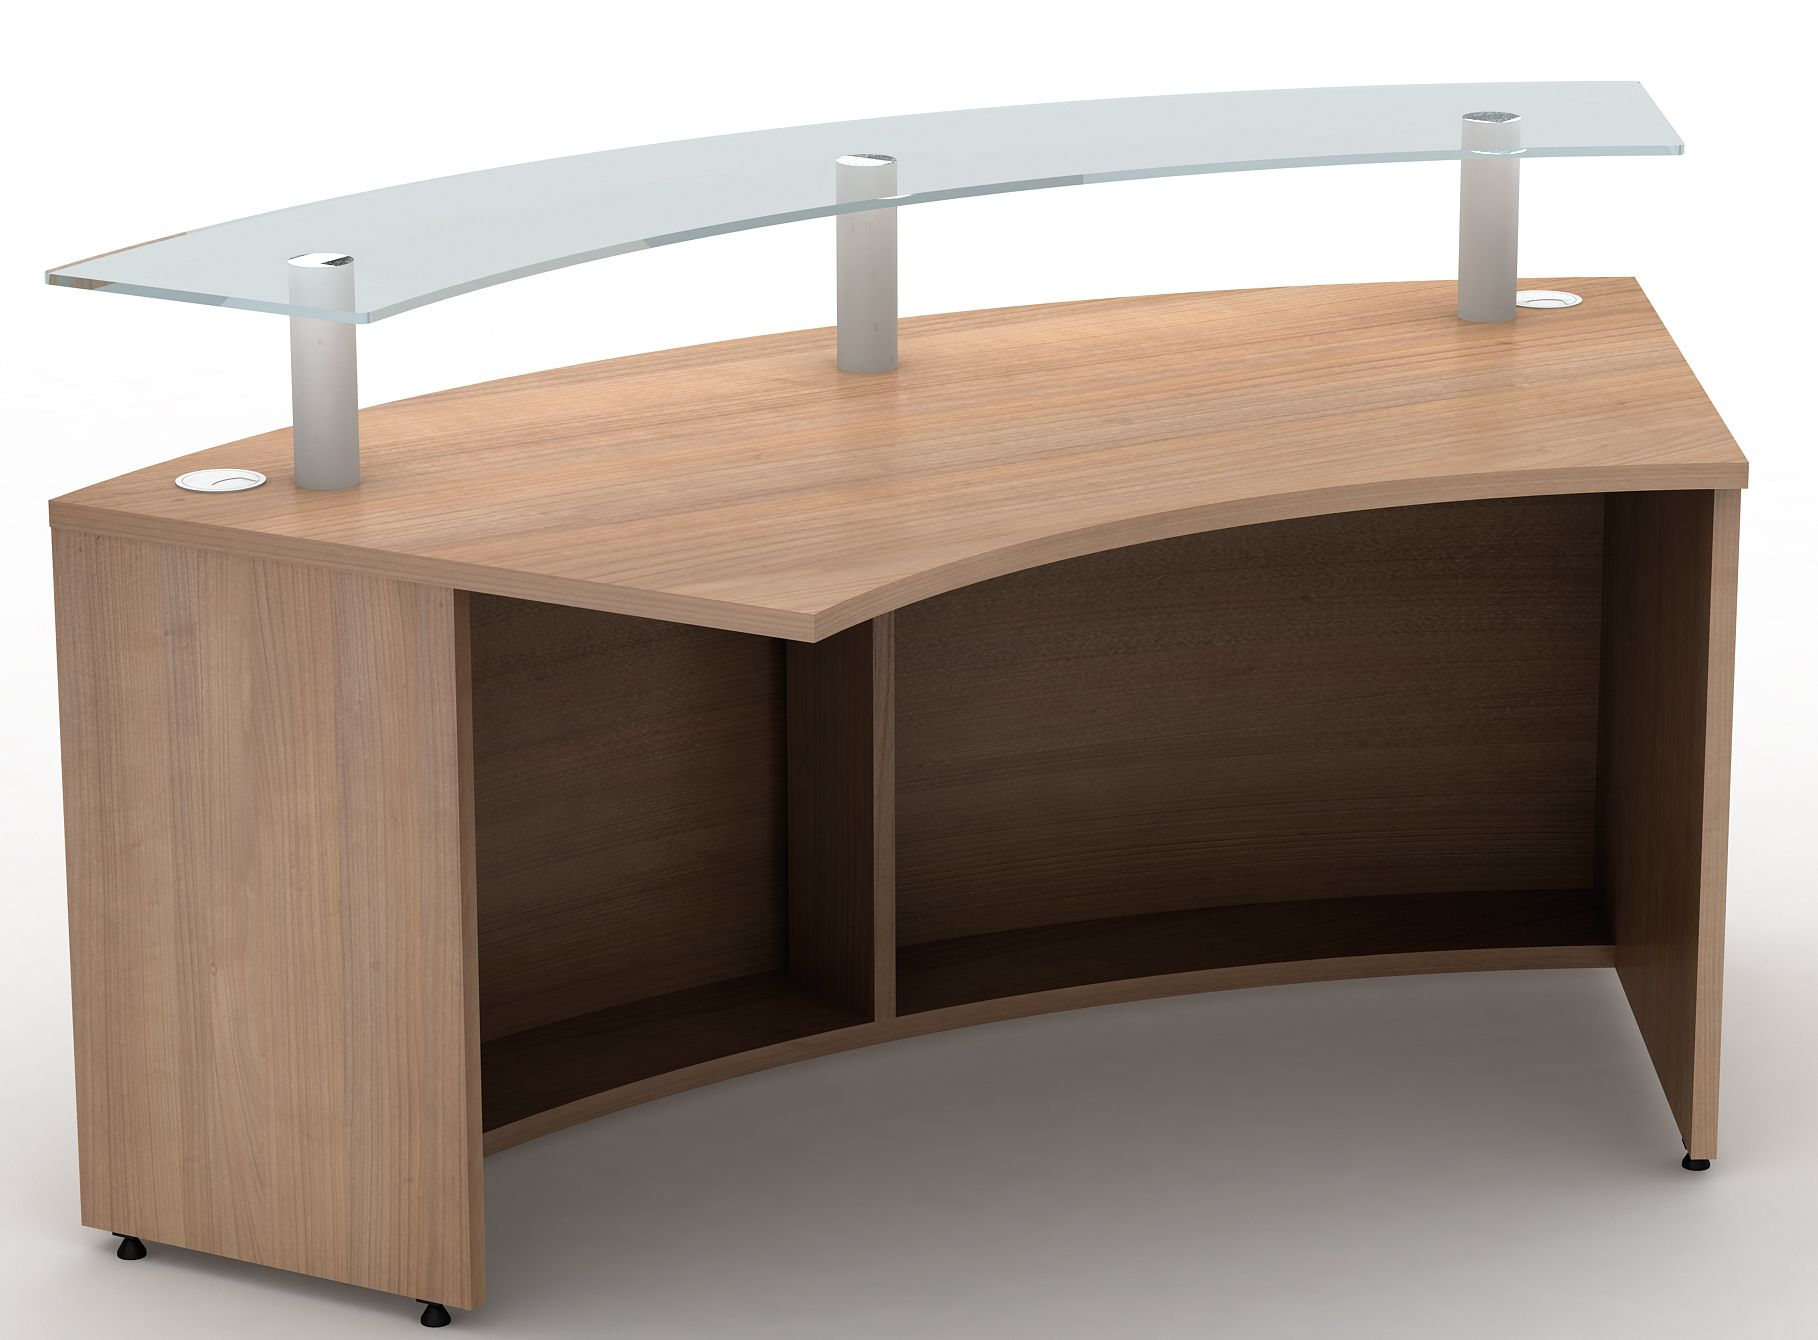 1800mm Radius Curved Reception Desk with Glass Shelf